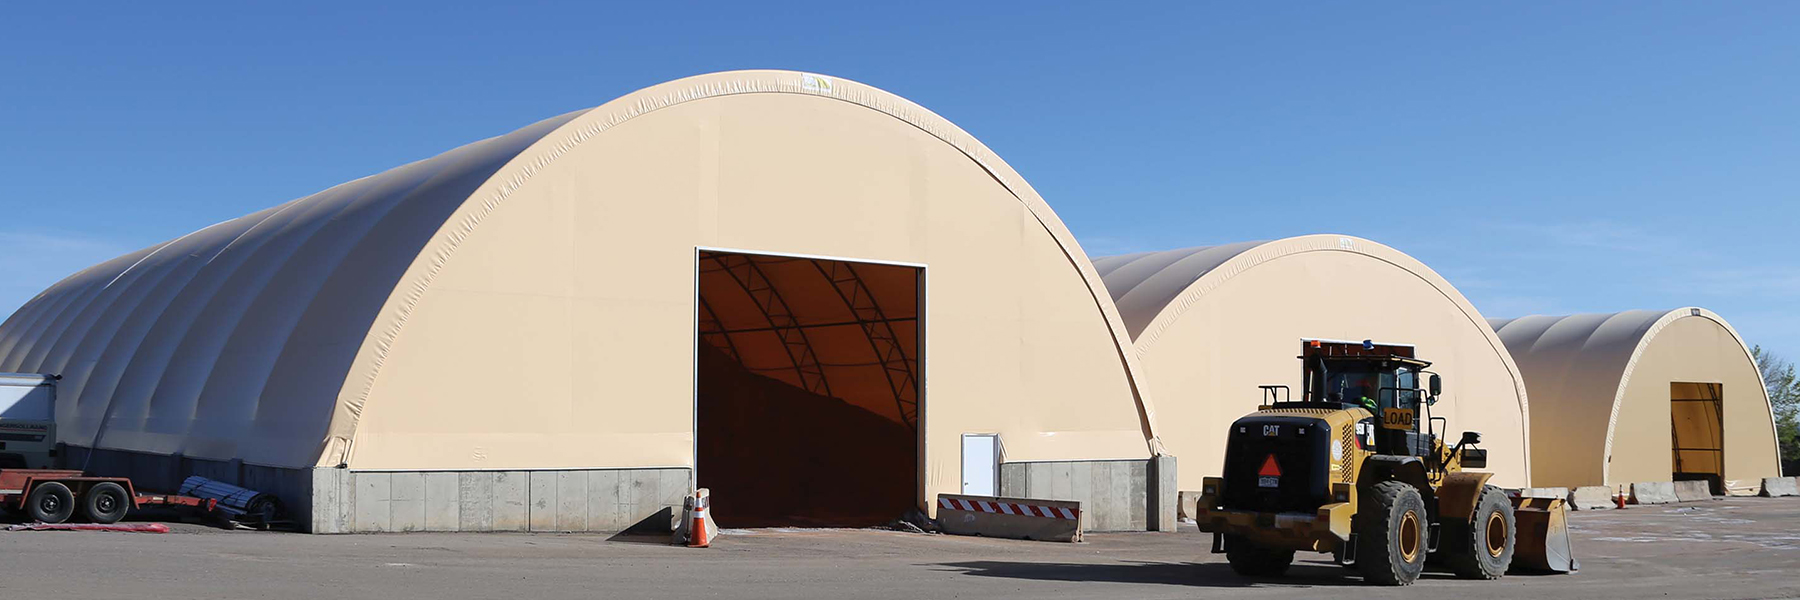 Financing Application - Beige Fabric Structures